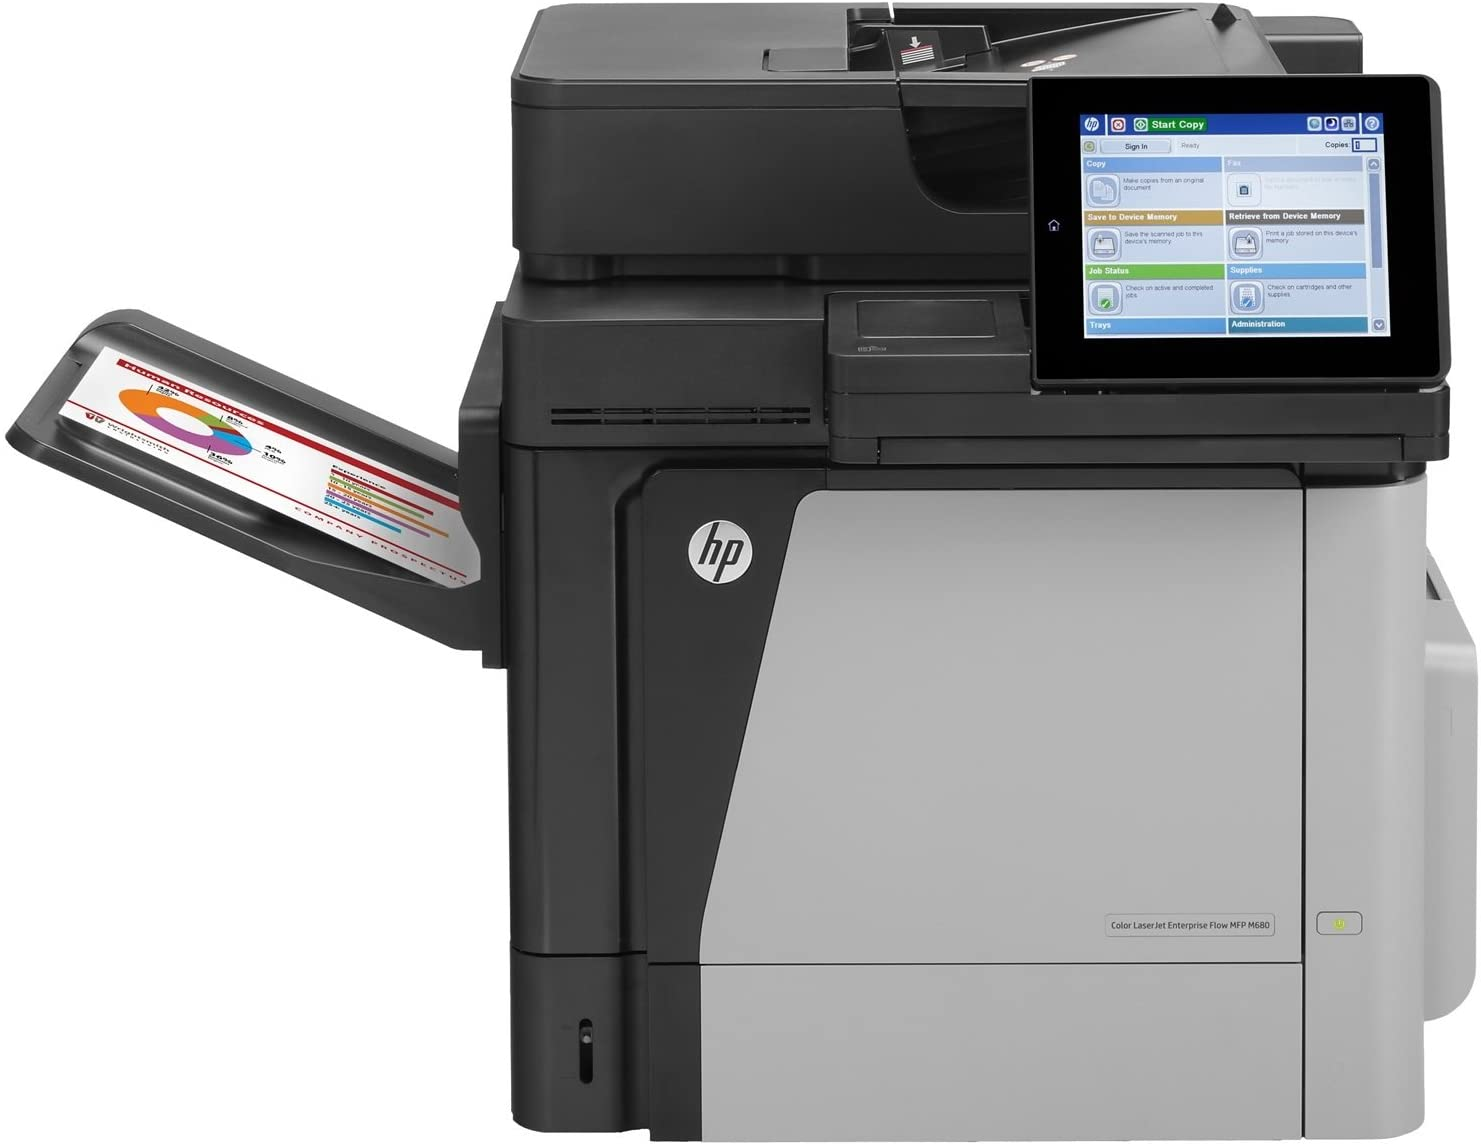 HP Color LaserJet Managed M680dnm Color Laser MFP, Demo (L3U47A)